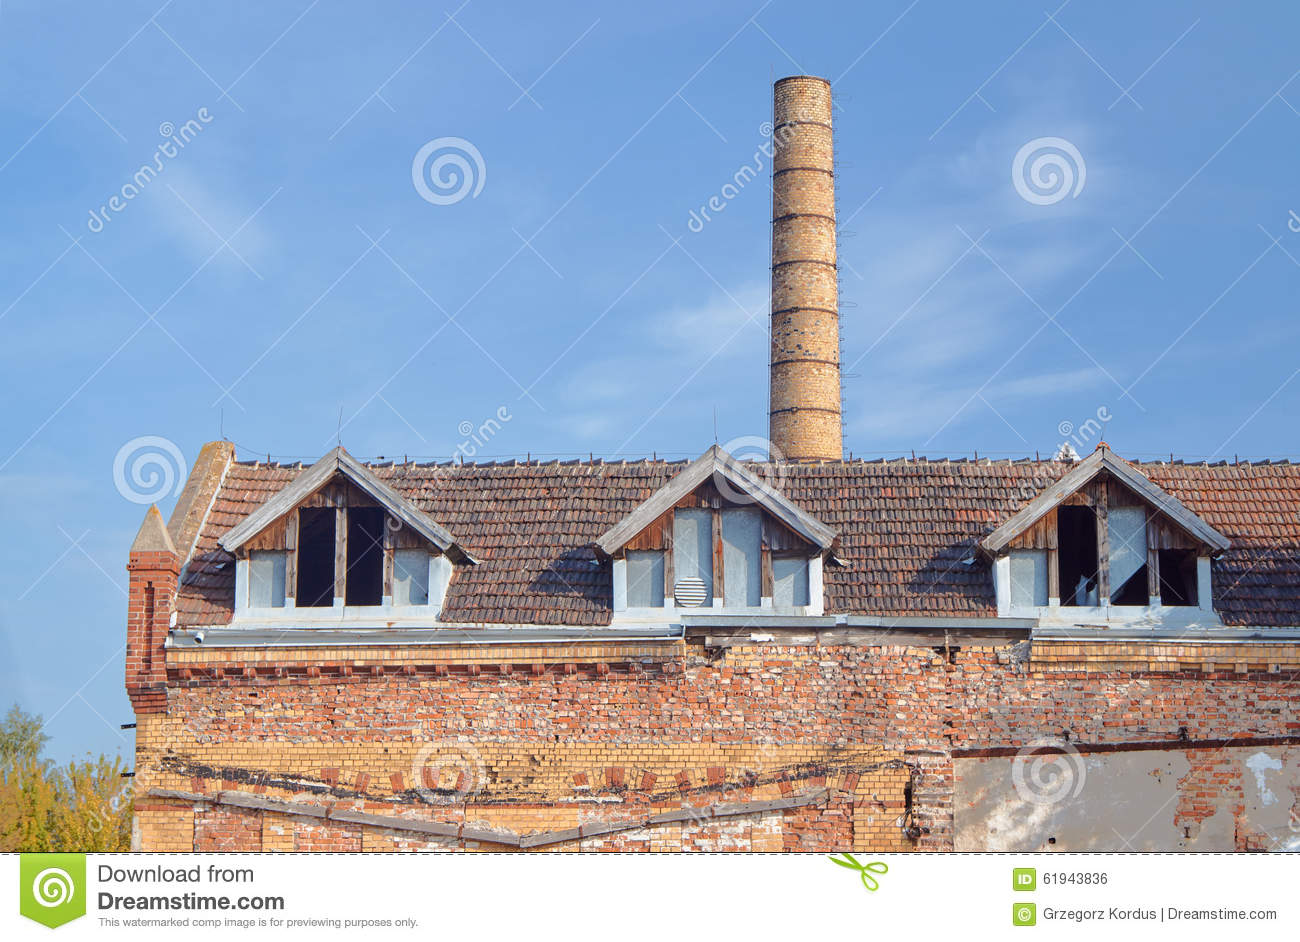 Chimney And Buildings Of The Old Slaughterhouse Stock Photo